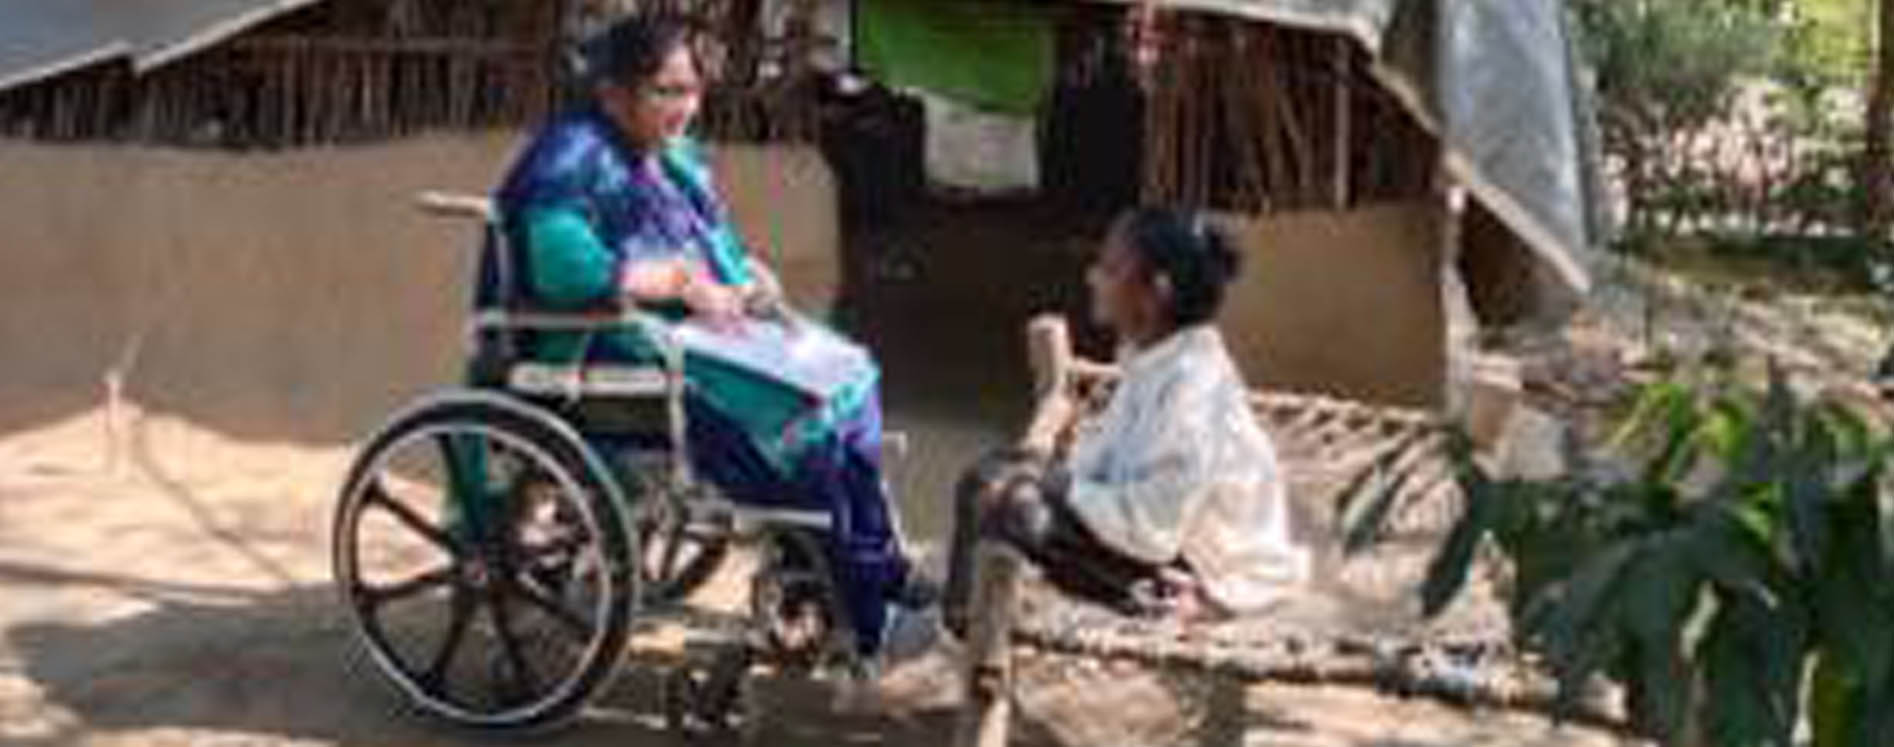 Nita Parag speaking to Bhanu our beneficiary i Gujarat Project area